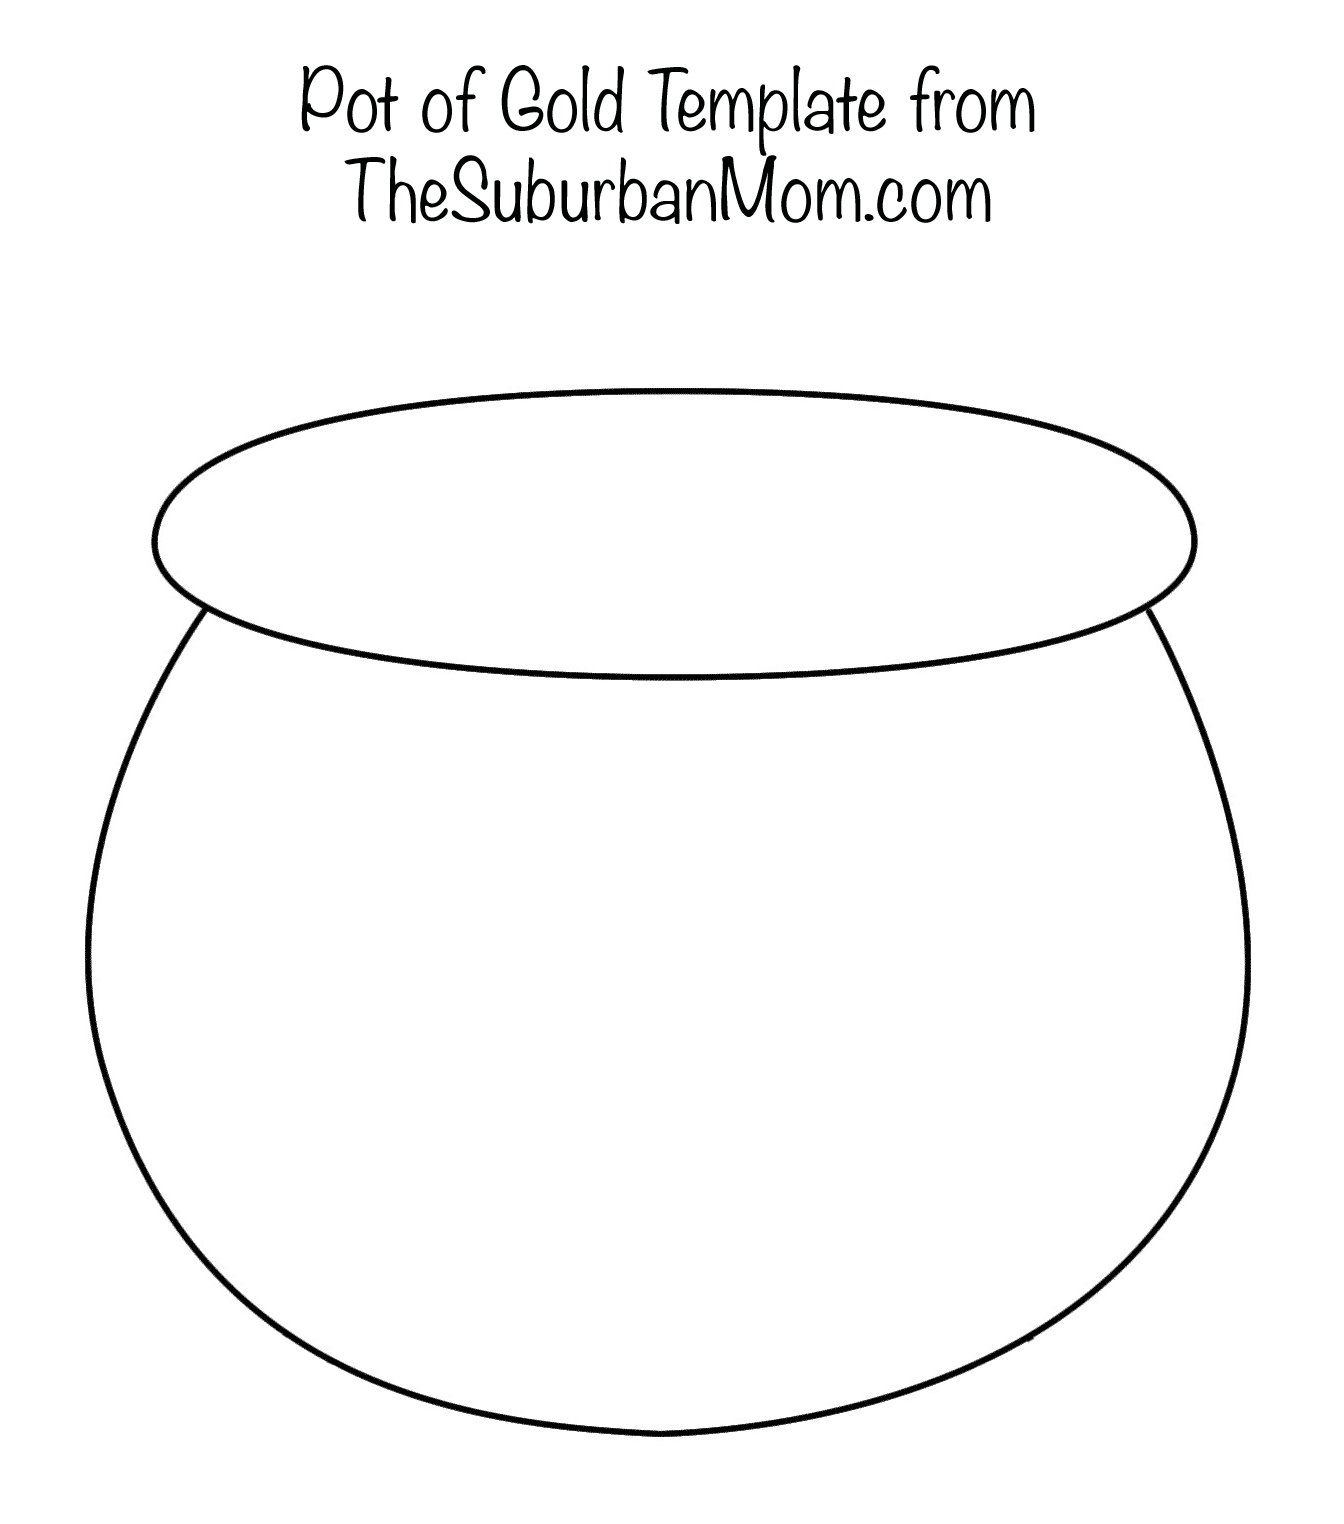 Painting rainbows with q tips free printable template for Pot of gold coloring page printable